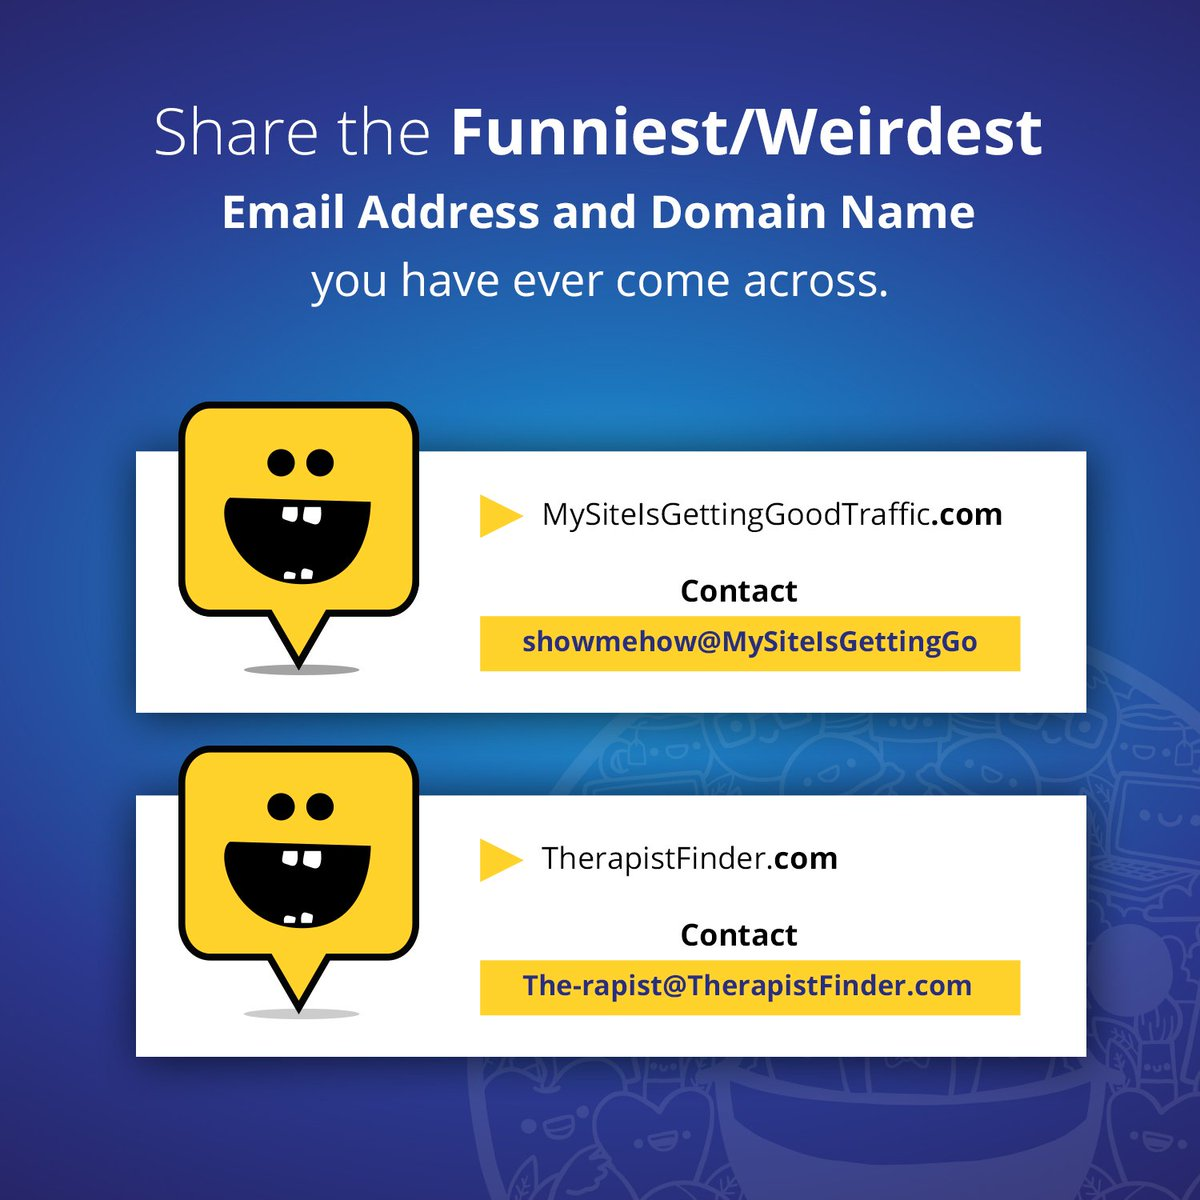 Cloudways On Twitter Domain Names And Email Ids Can Be Funny Share The Funniest Domain Name Email You Have Ever Seen Domains